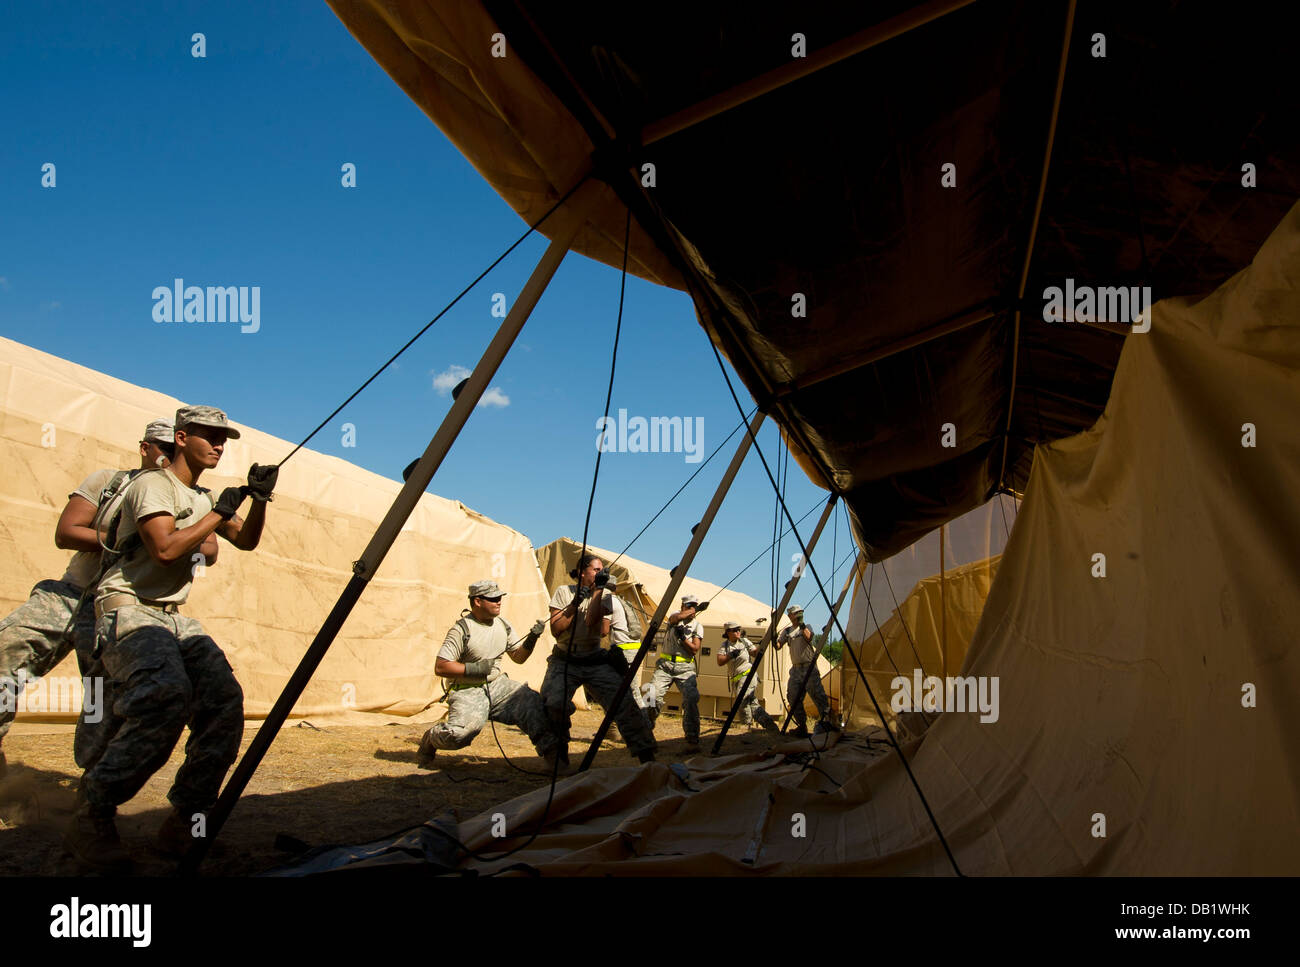 U.S. Air Force and Army personnel assemble a Utilis TM Tall soft shelter during Exercise Global Medic, Fort McCoy, - Stock Image